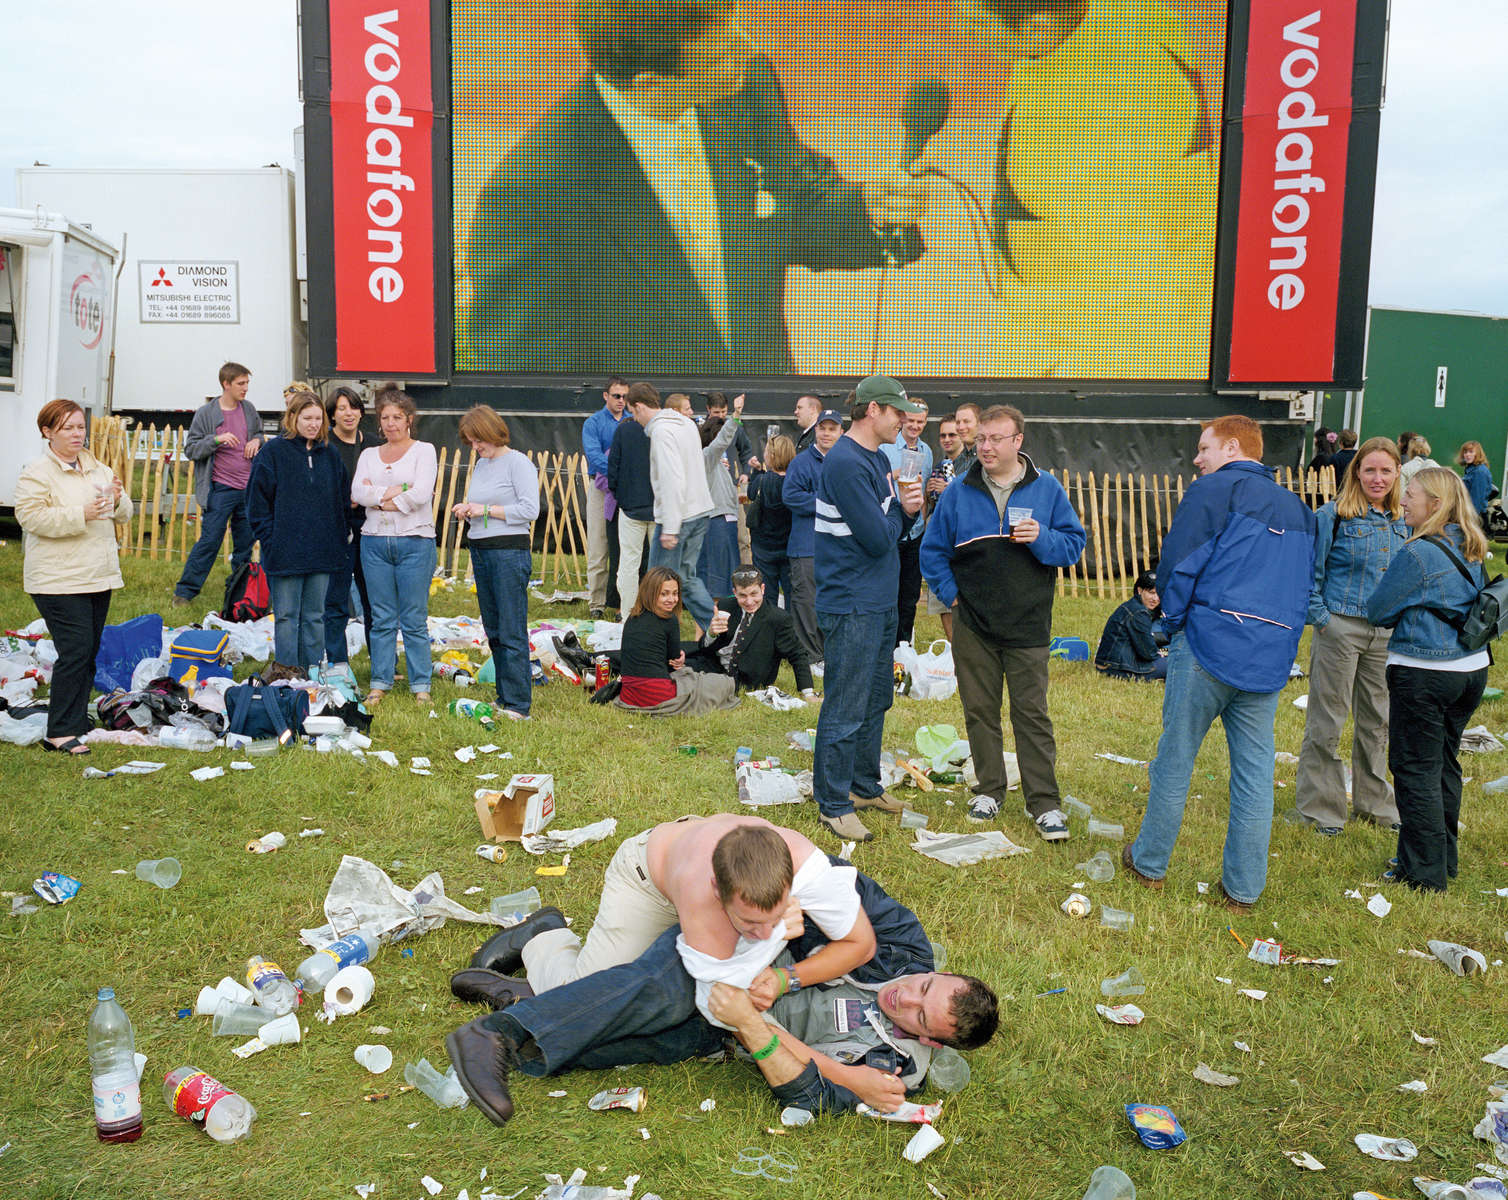 Two young men fool about on the grass beneath a screen showing the action on Derby Day at Epsom Downs Racecourse. June 2001